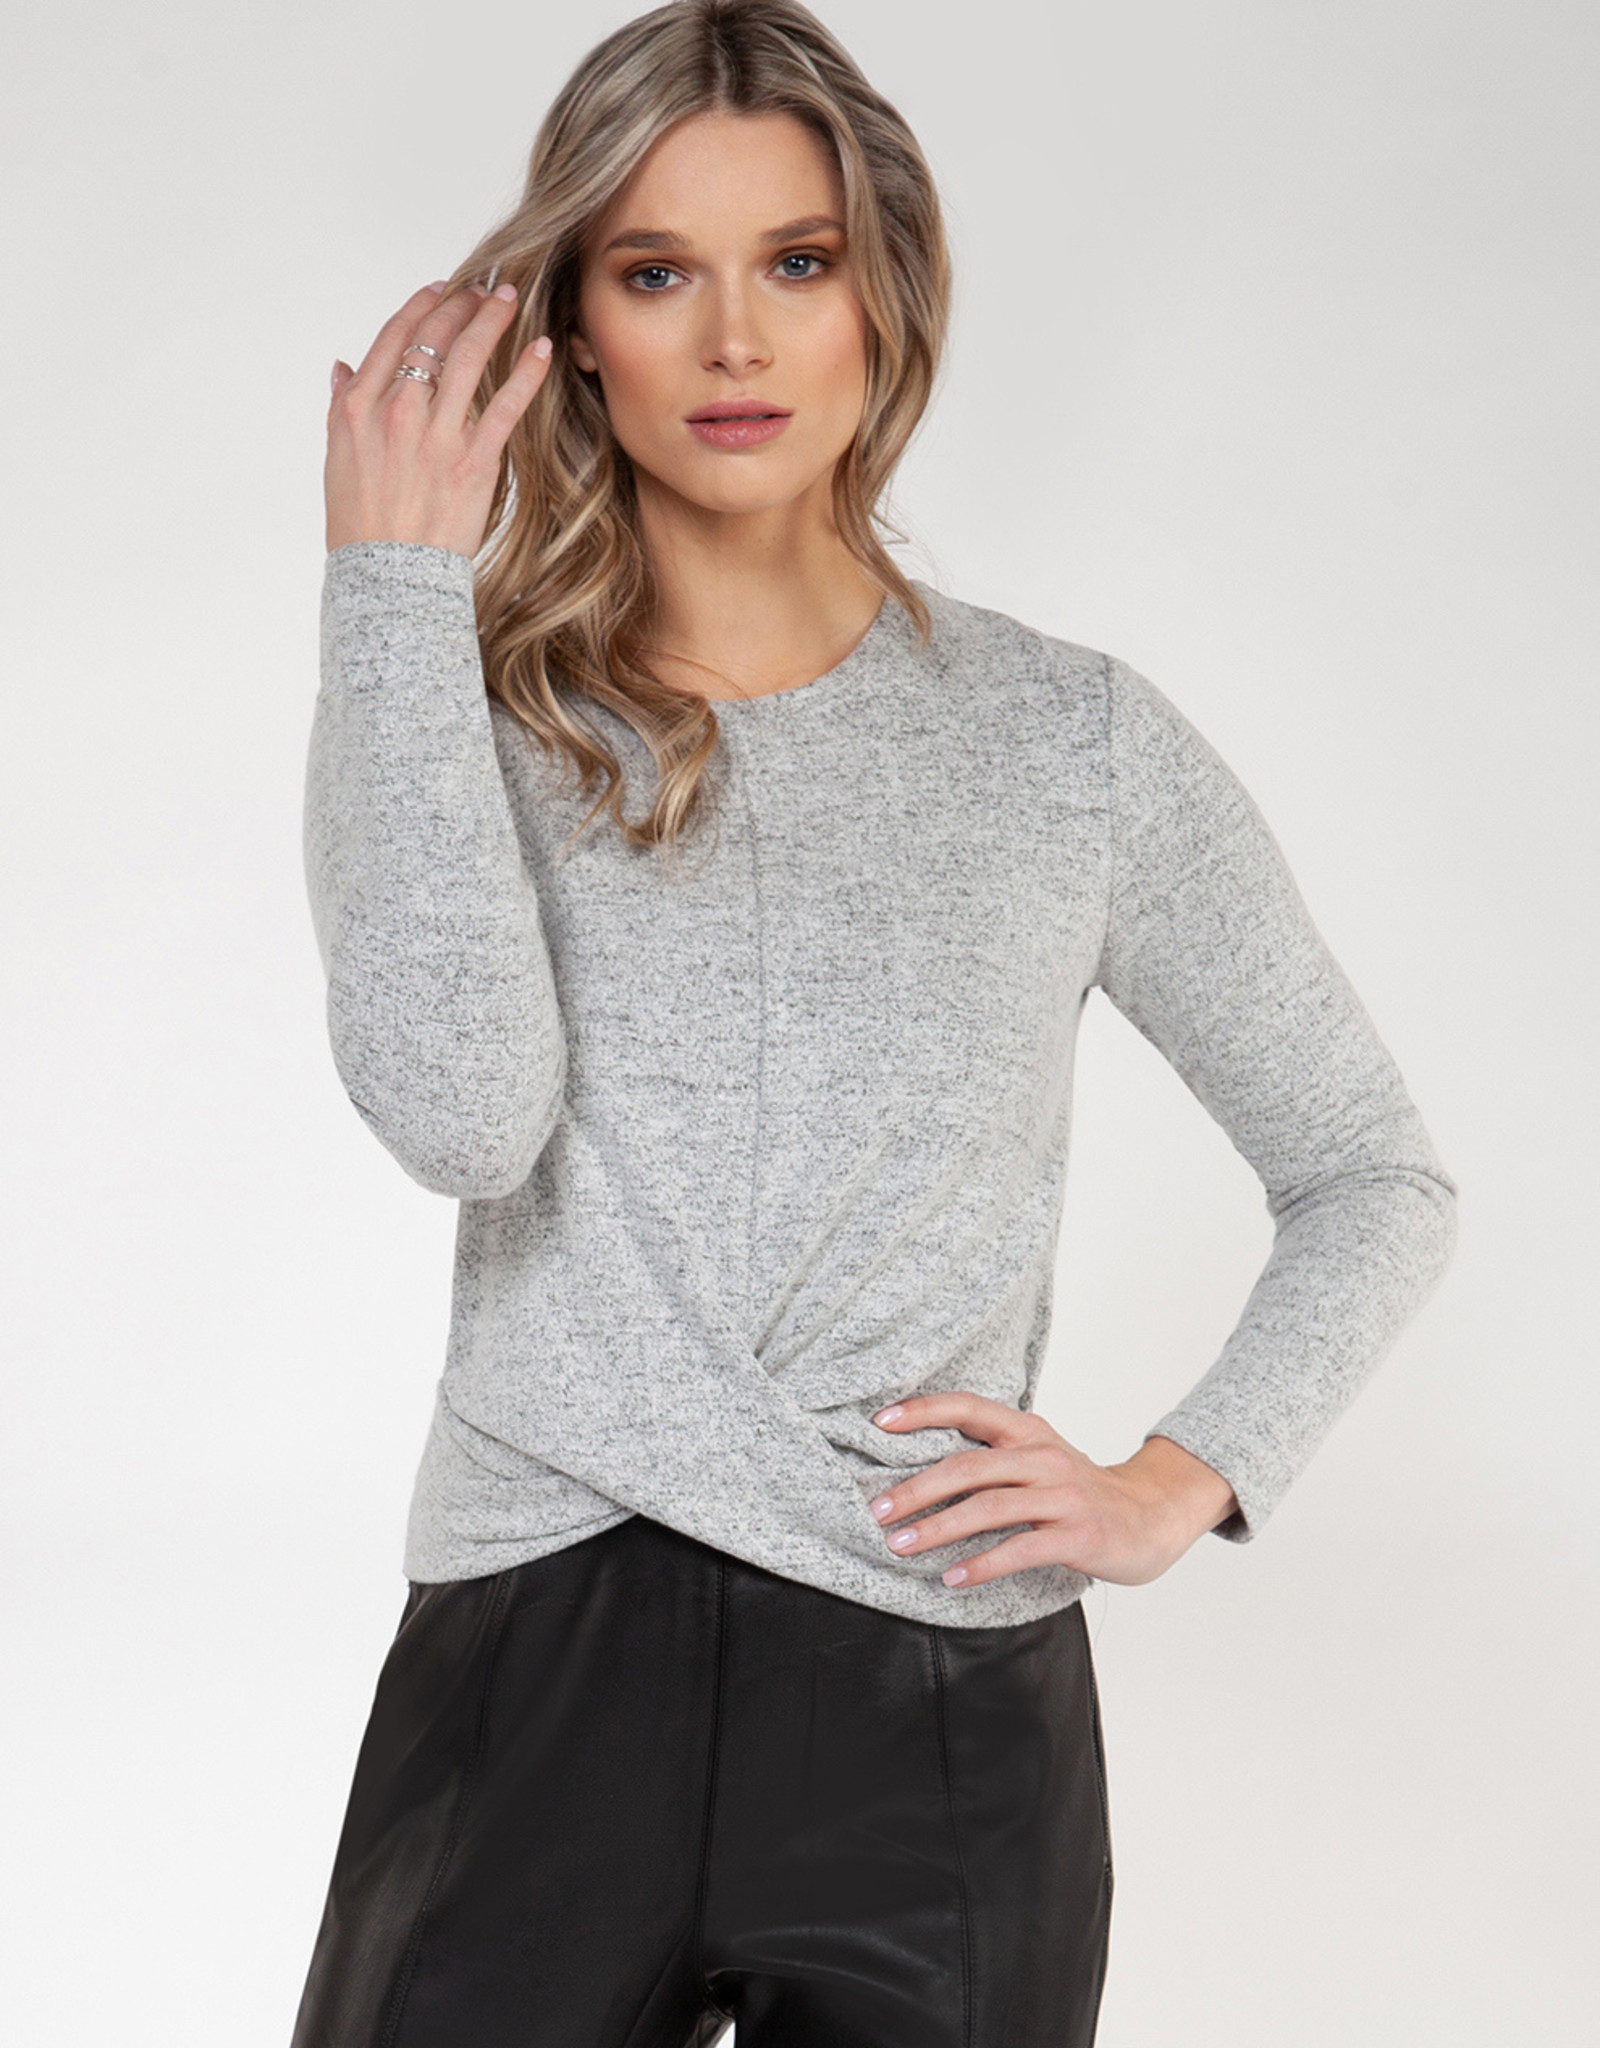 Black Tape Grey Knit Top